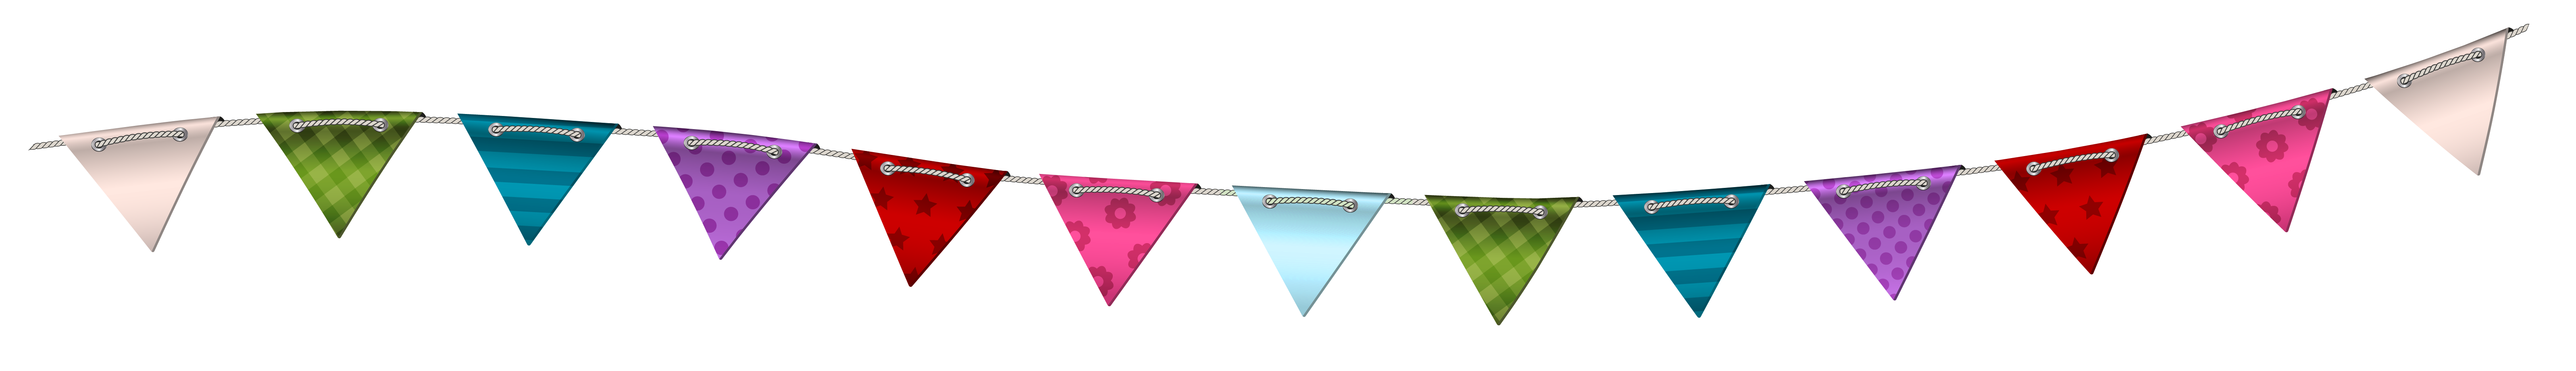 Triangle clipart streamer Streamer PNG size Party Art